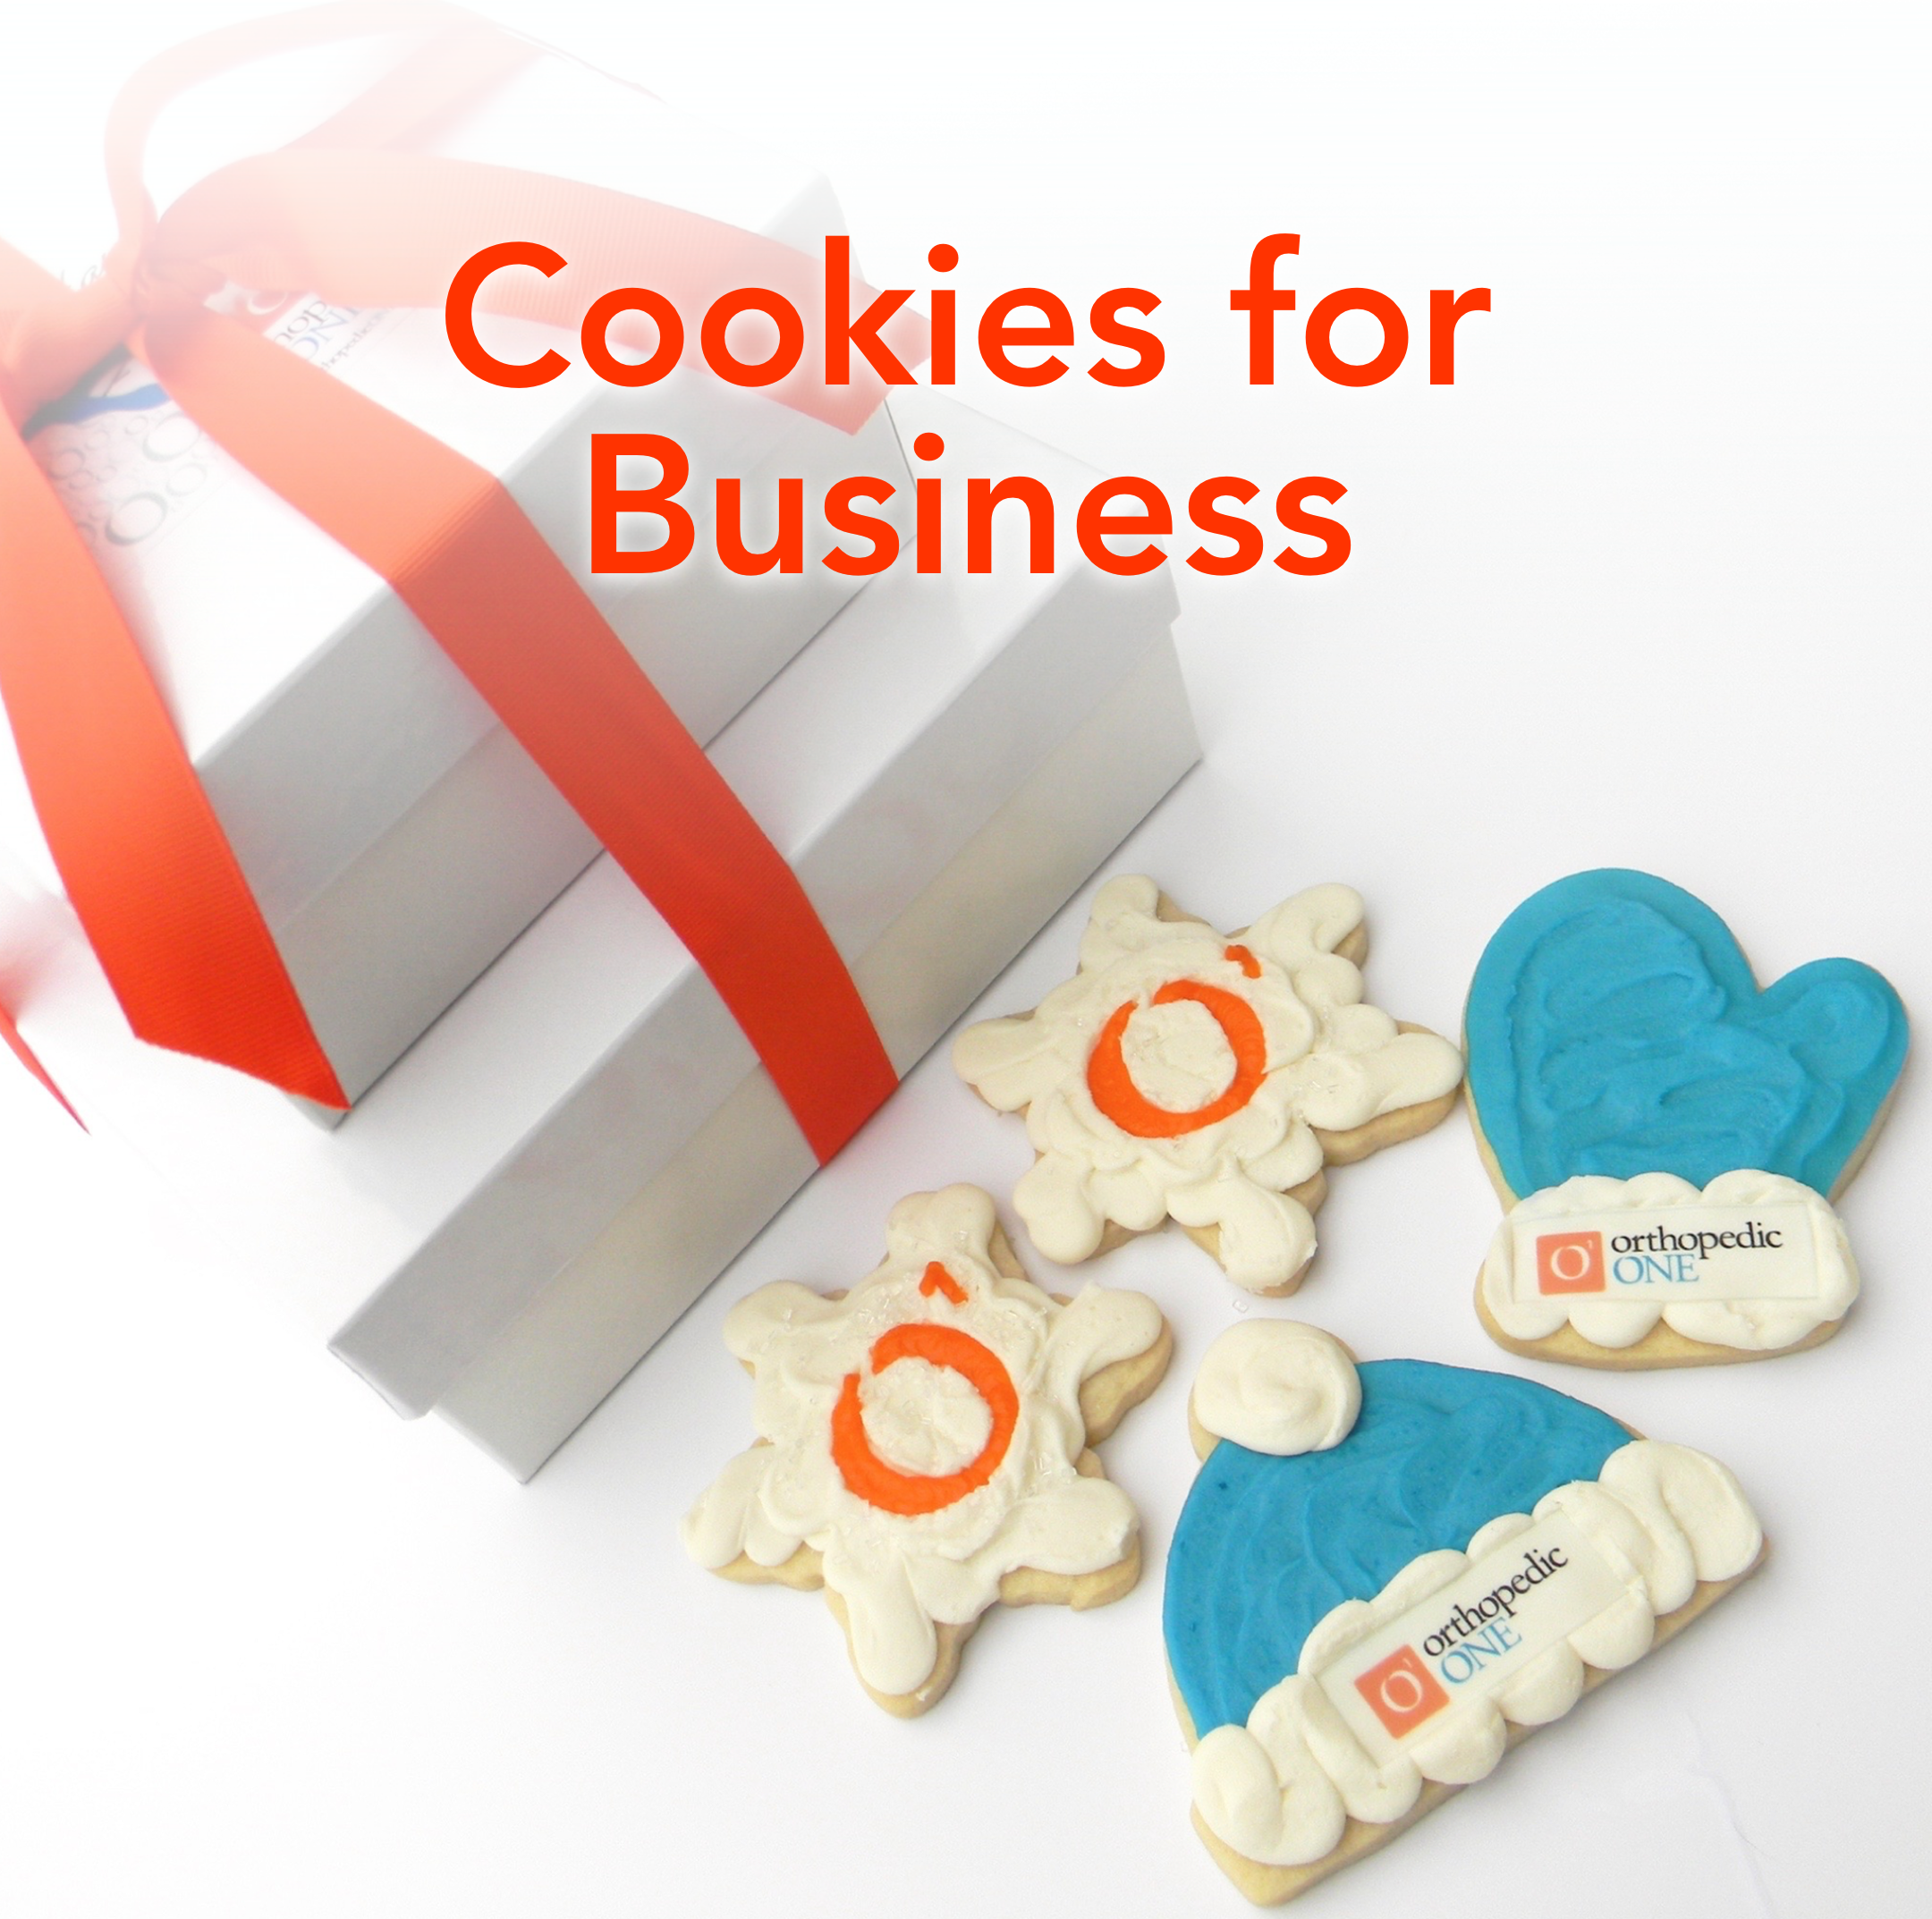 Cookies with your company logo make great gifts or a special touch for corporate events. Learn more.